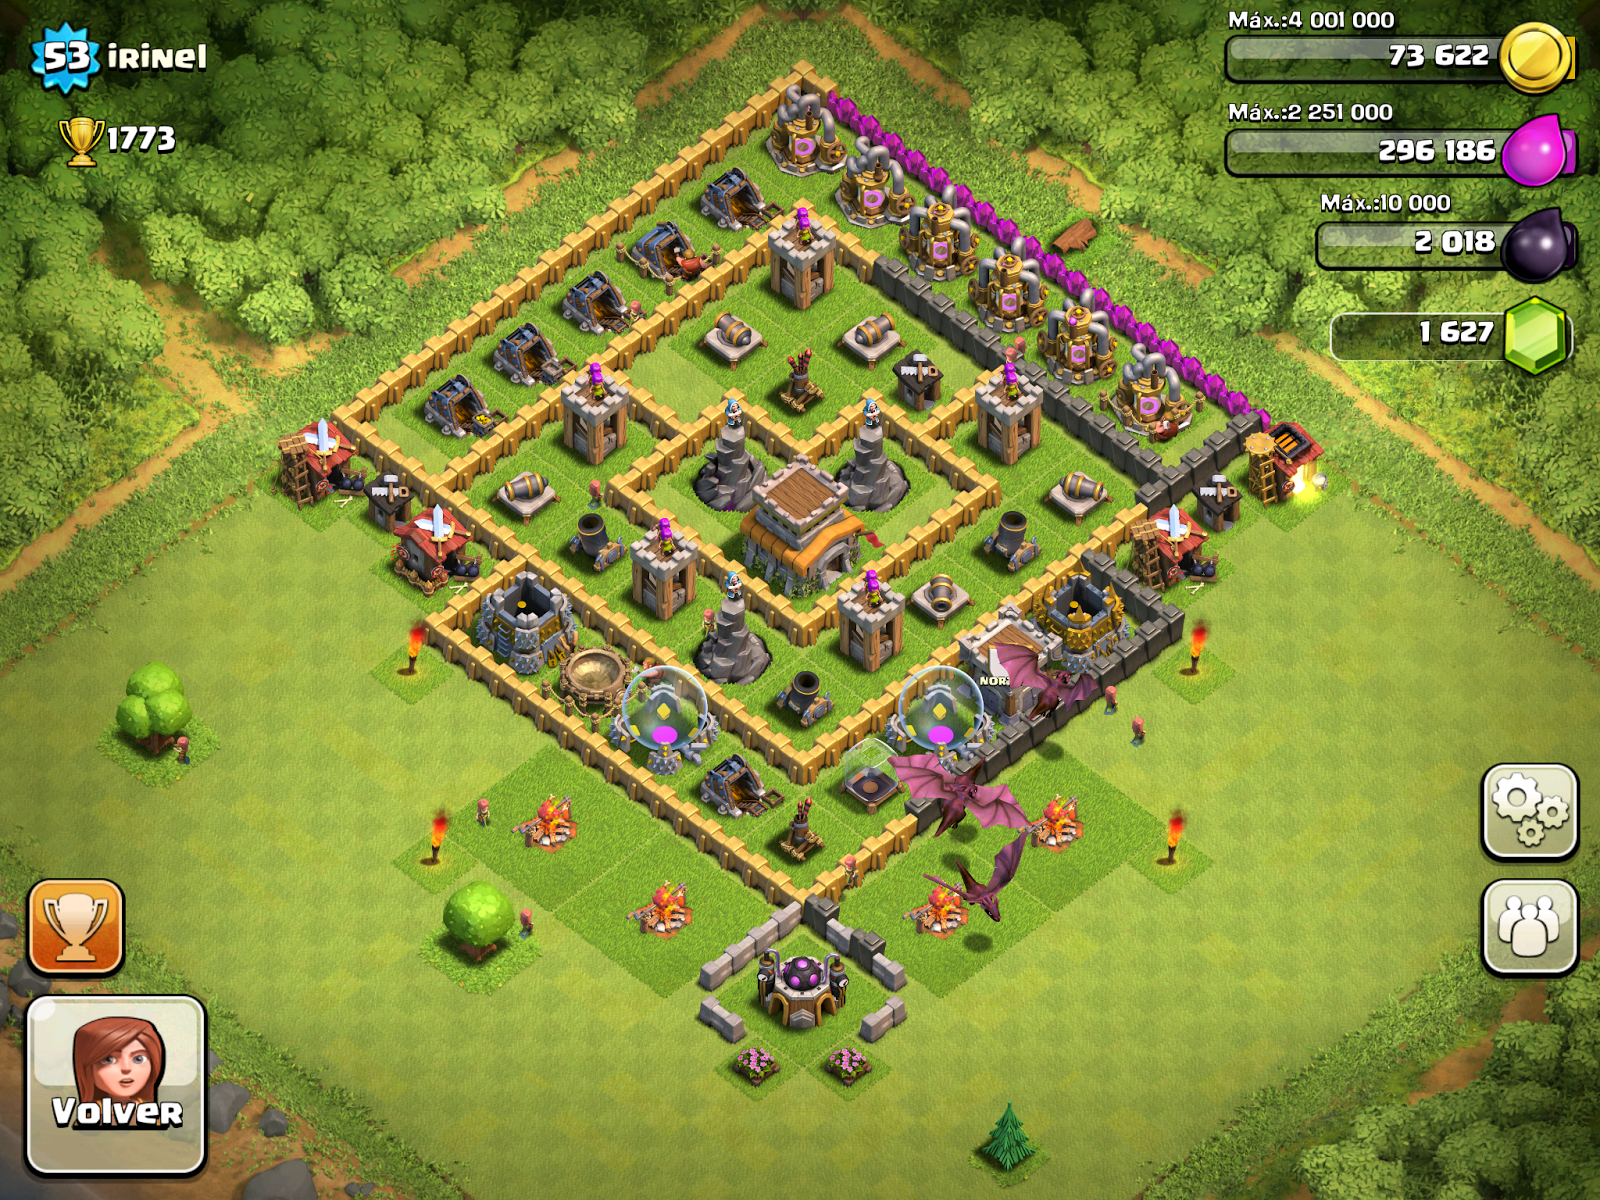 ESPAÑA INMORTAL - Clash of Clans